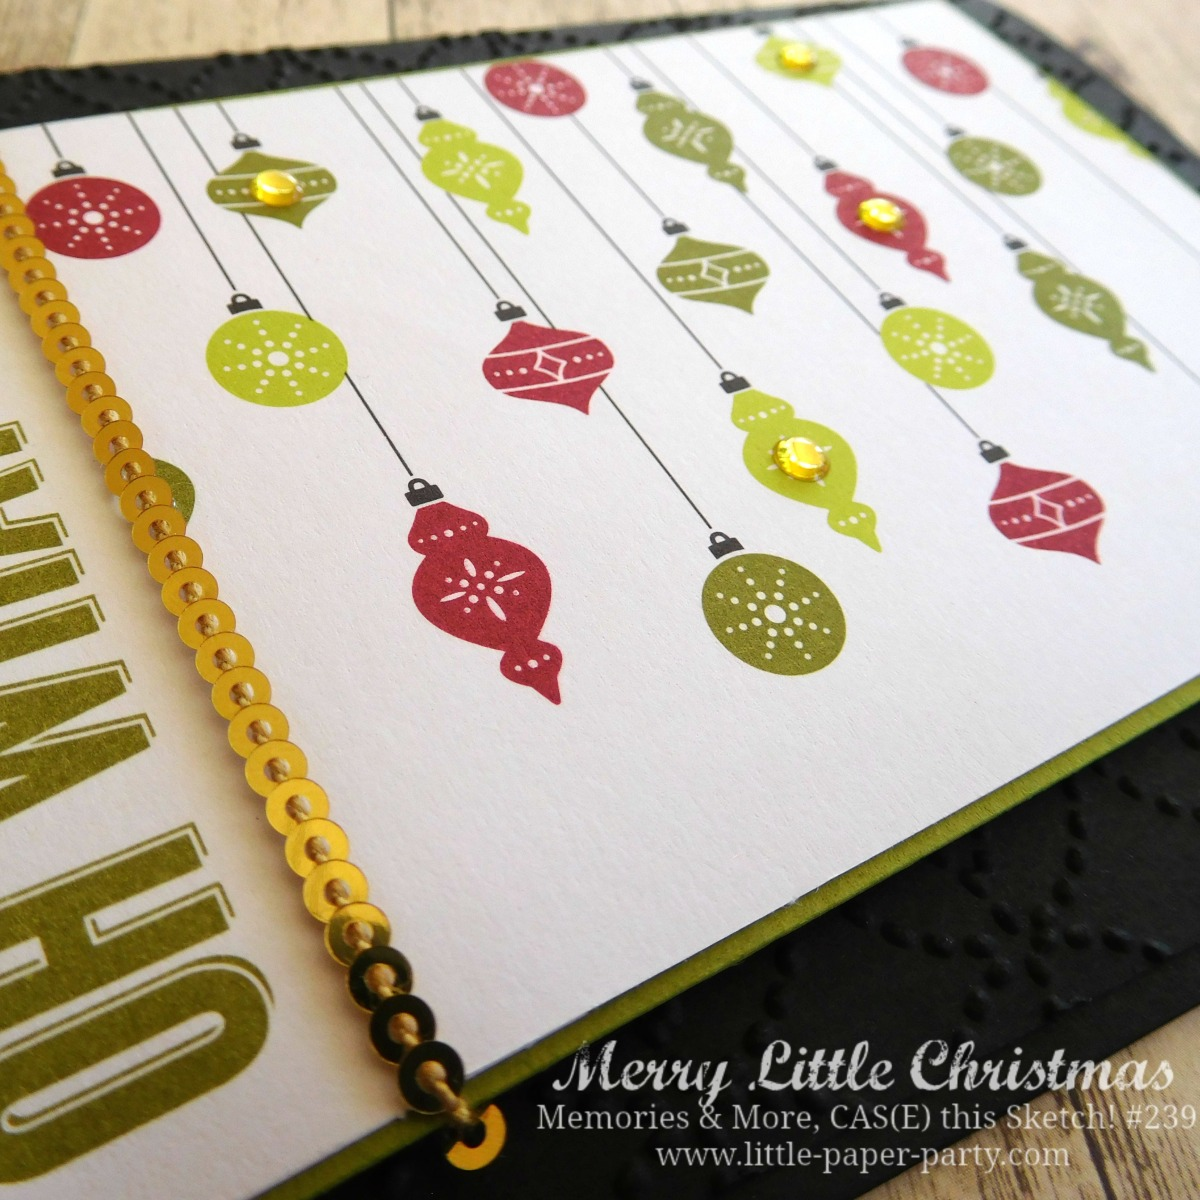 Merry Little Christmas Memories & More